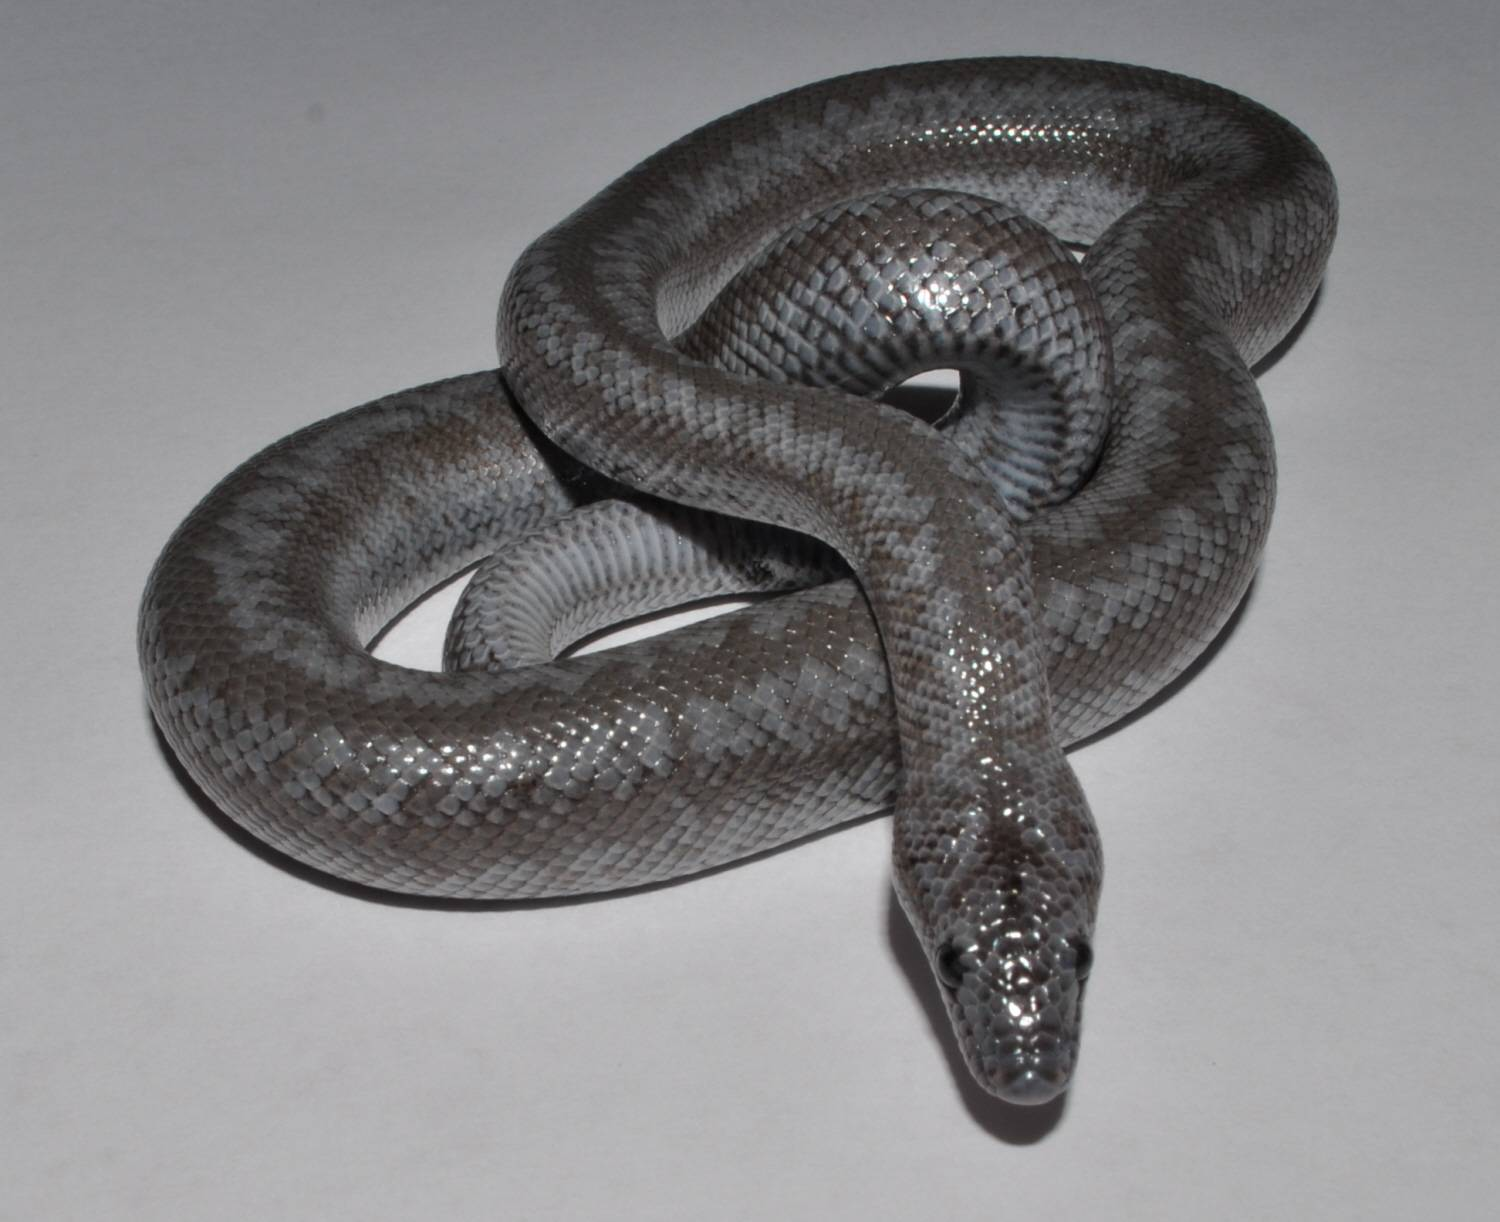 Male Anerythristic Rosy Boa